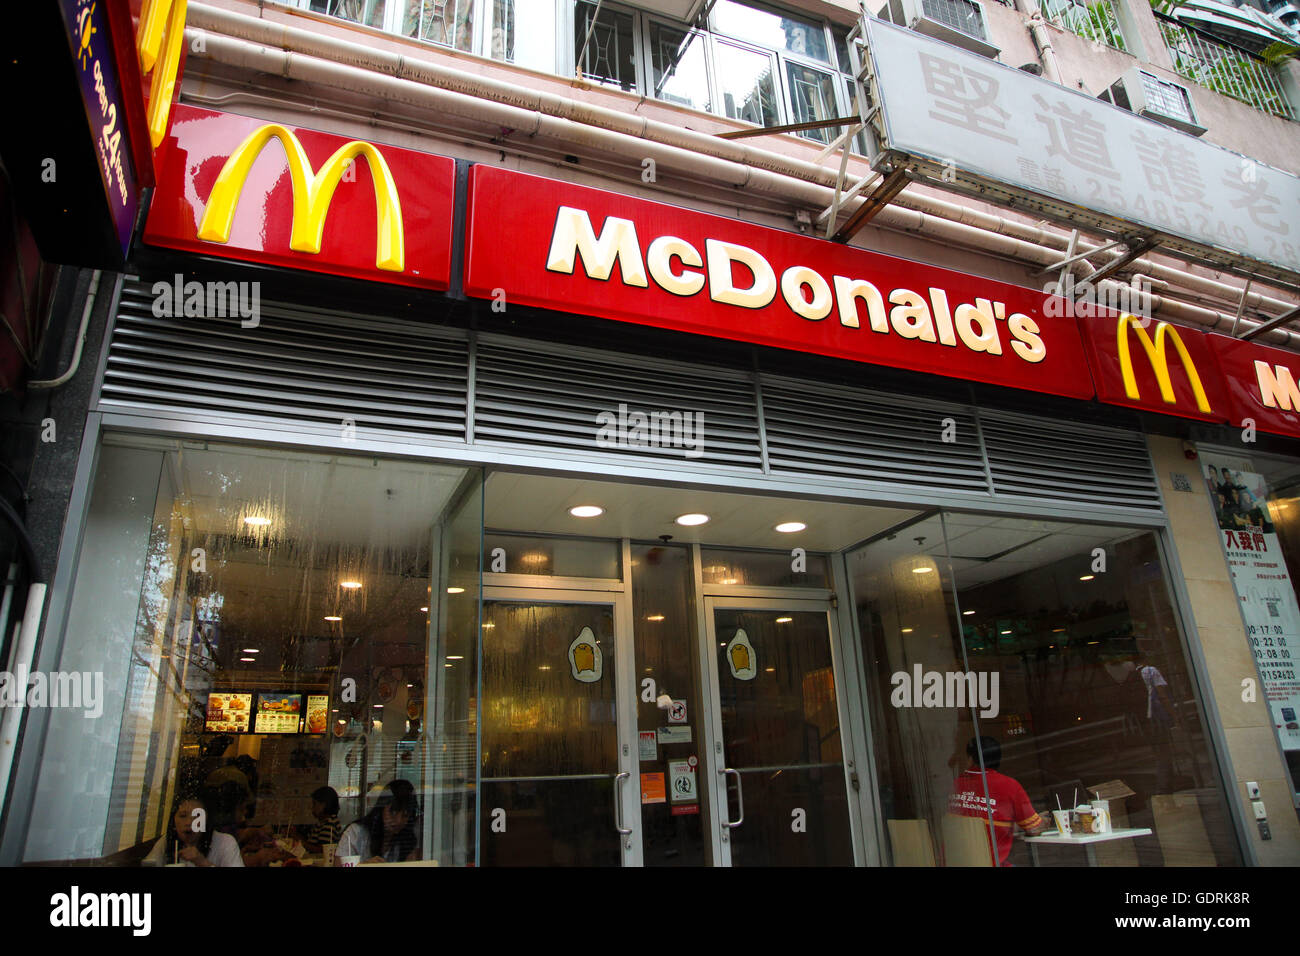 McDonalds Kowloon, Honk Kong, China - Stock Image